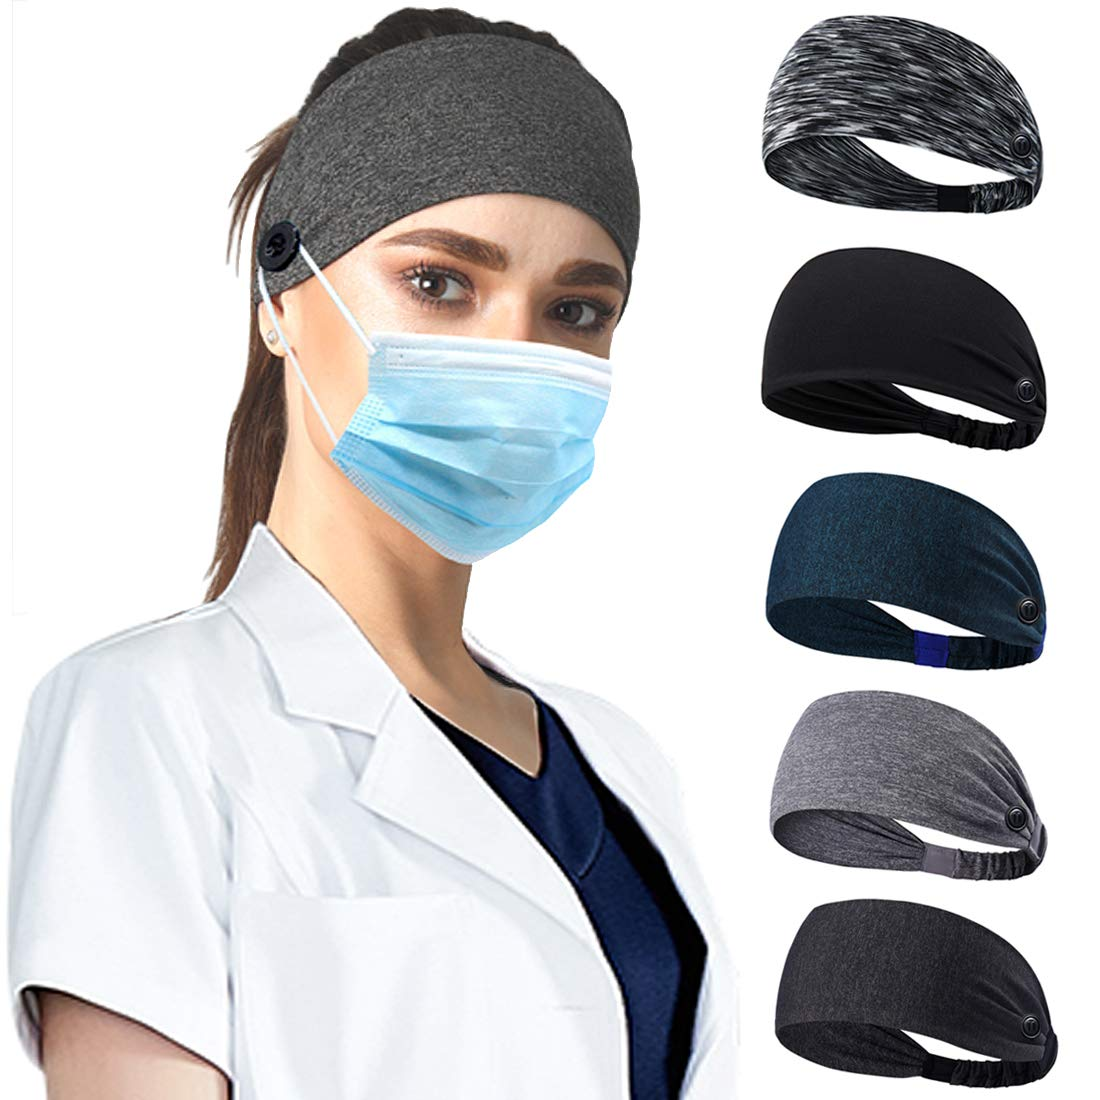 Ehfswrr Headbands With Button for Mask, Nurse Headband for Women and Men Yoga Sports Width Workout Turban Non Slip Heawrap for Doctors, Protect Your Ears 5 pack : Beauty